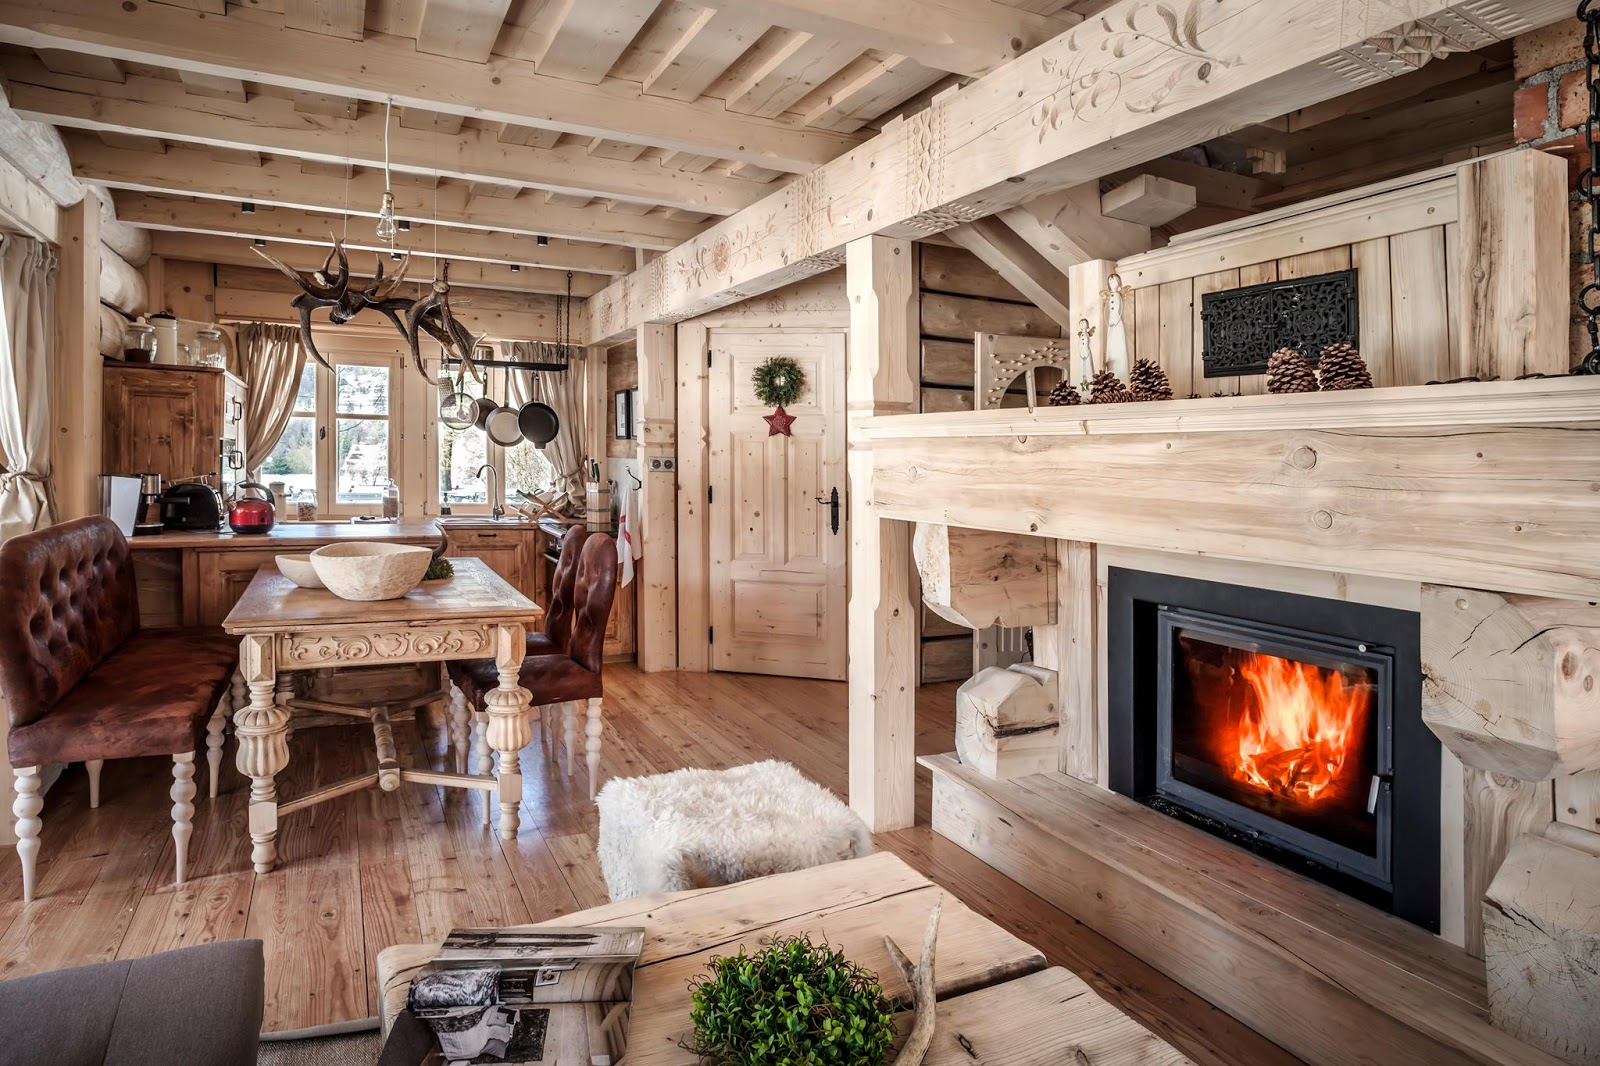 Cozy chalet with a fireplace